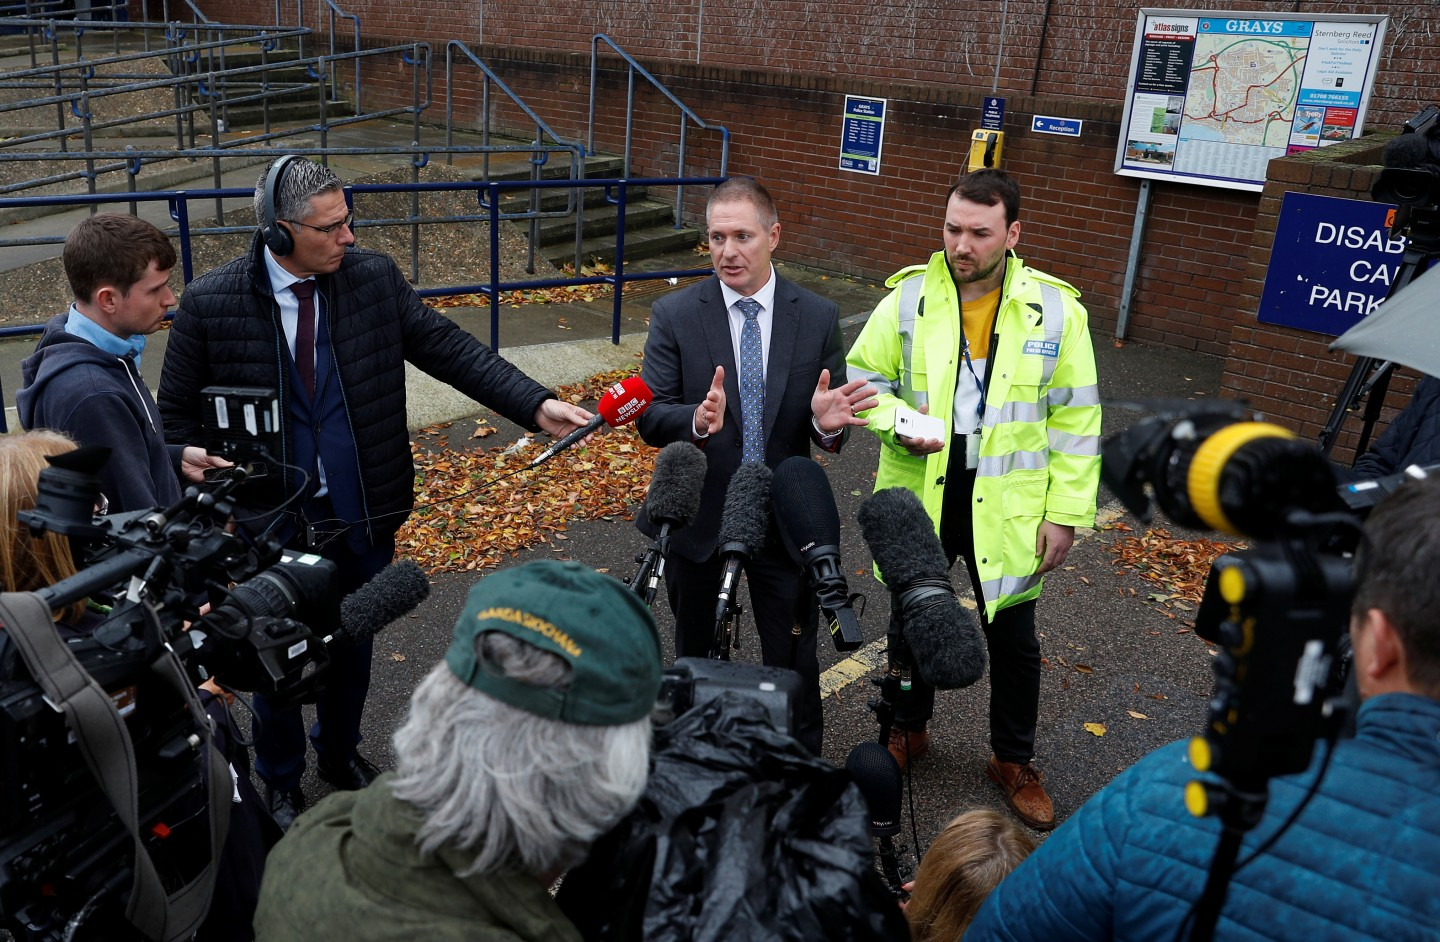 Detective Inspector Martin Pasmore of Essex police speaks to the news media at Grays police station regarding the deaths of thirty-nine immigrants who were found inside a lorry, Essex, Britain October 26, 2019. REUTERS/Peter Nicholls